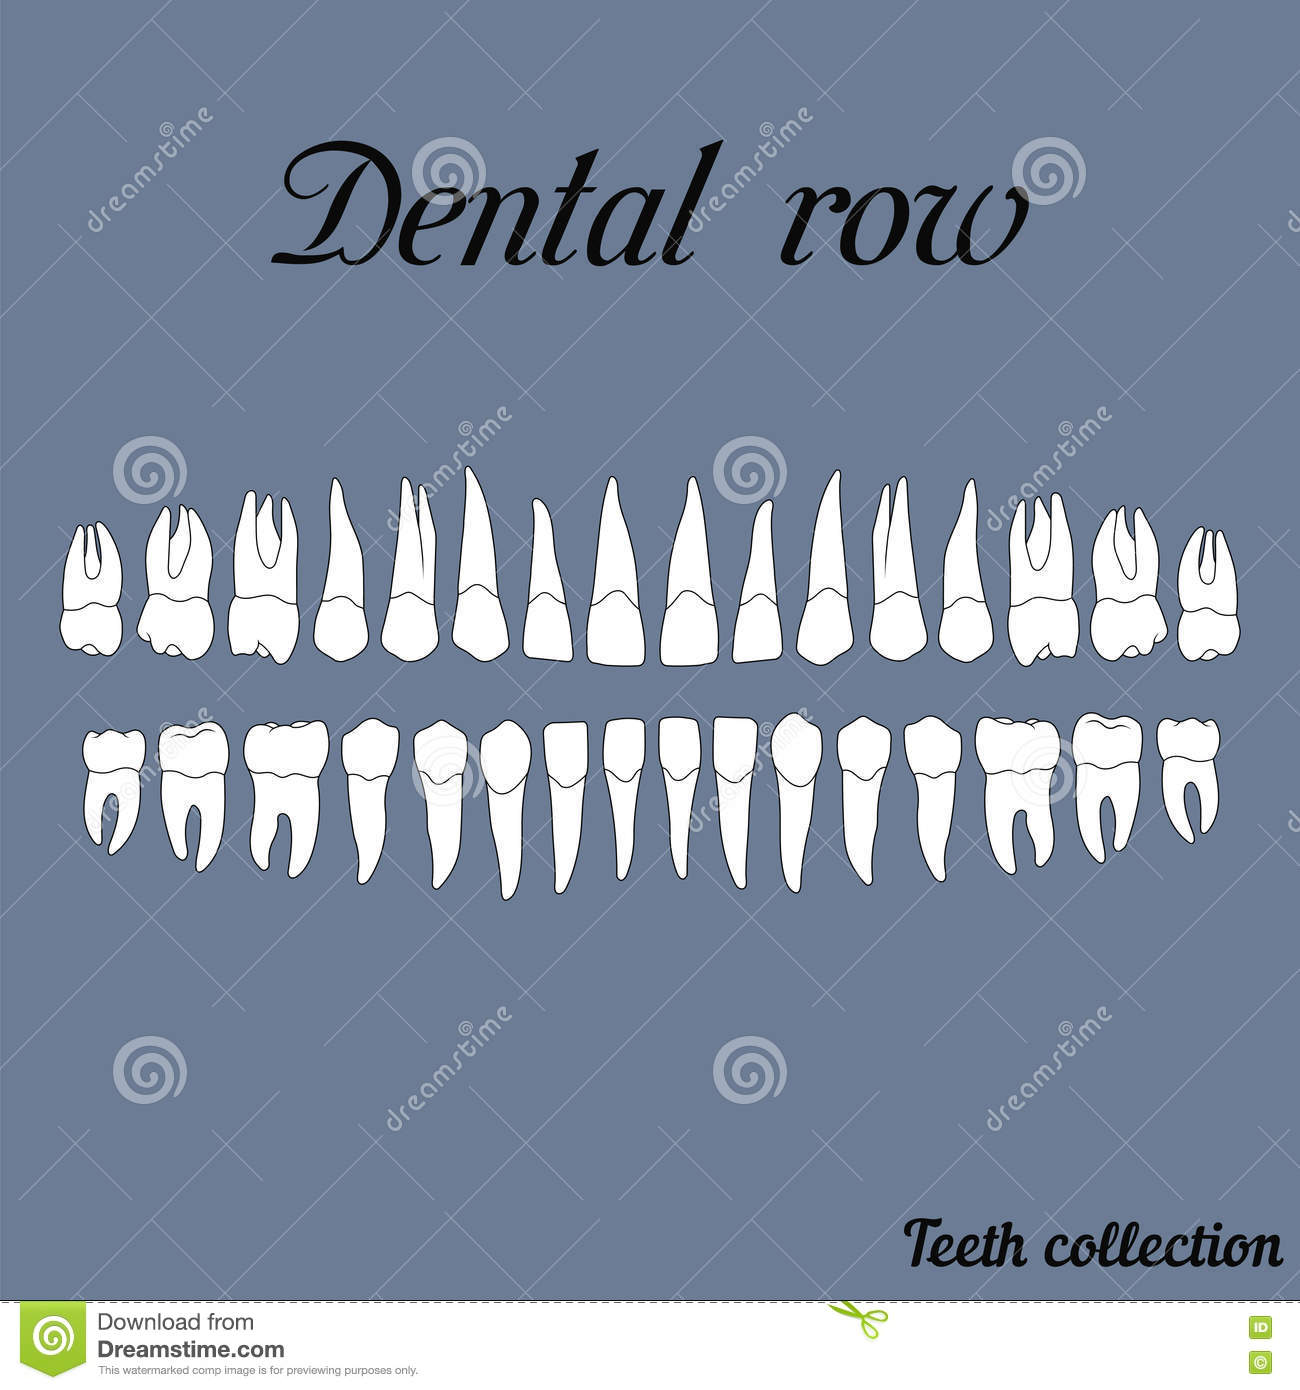 Jawbone stock illustrations 168 jawbone stock illustrations dental row teeth incisor canine premolar molar upper and lower jaw biocorpaavc Image collections